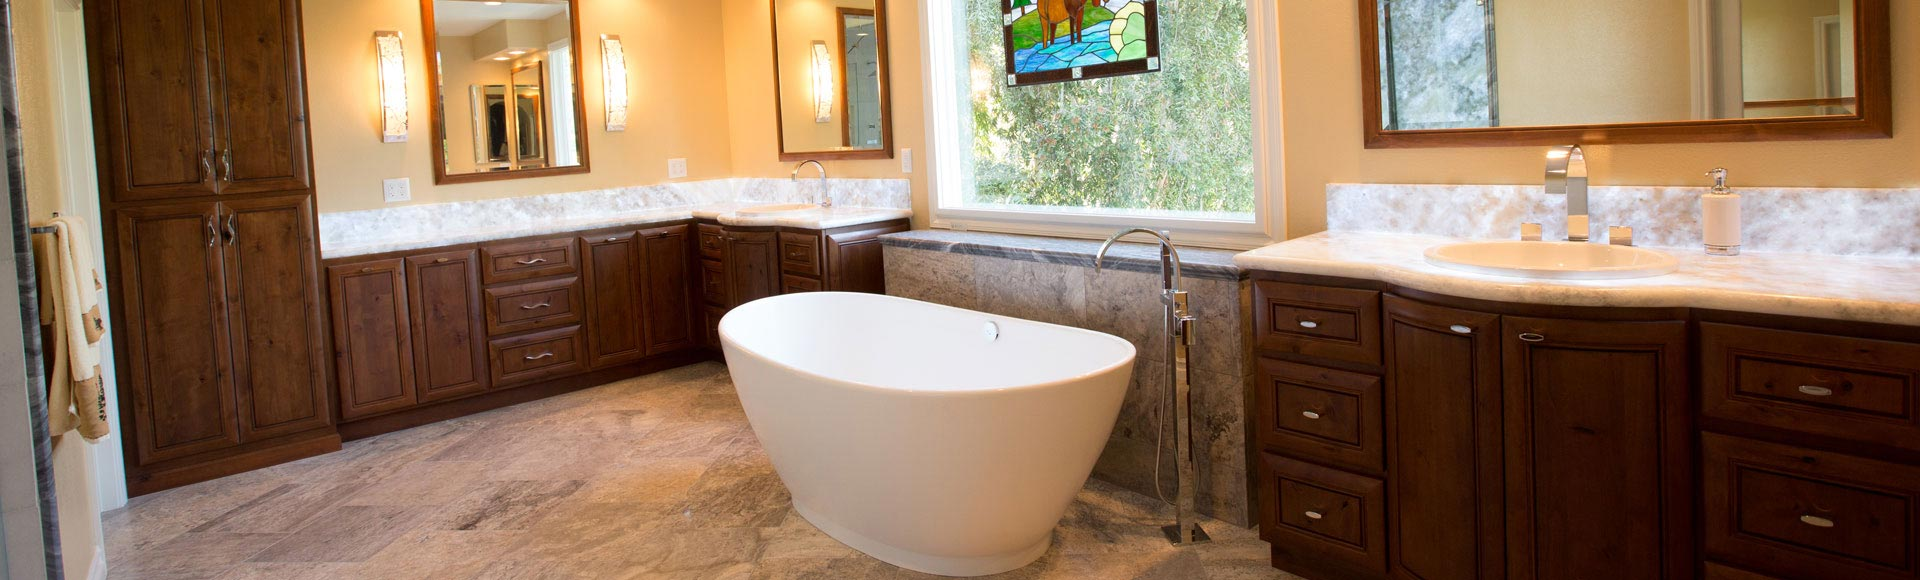 Standard_Faceframe_Custom_Cabinets_Dark_Master_Bathroom_AZ6A5784